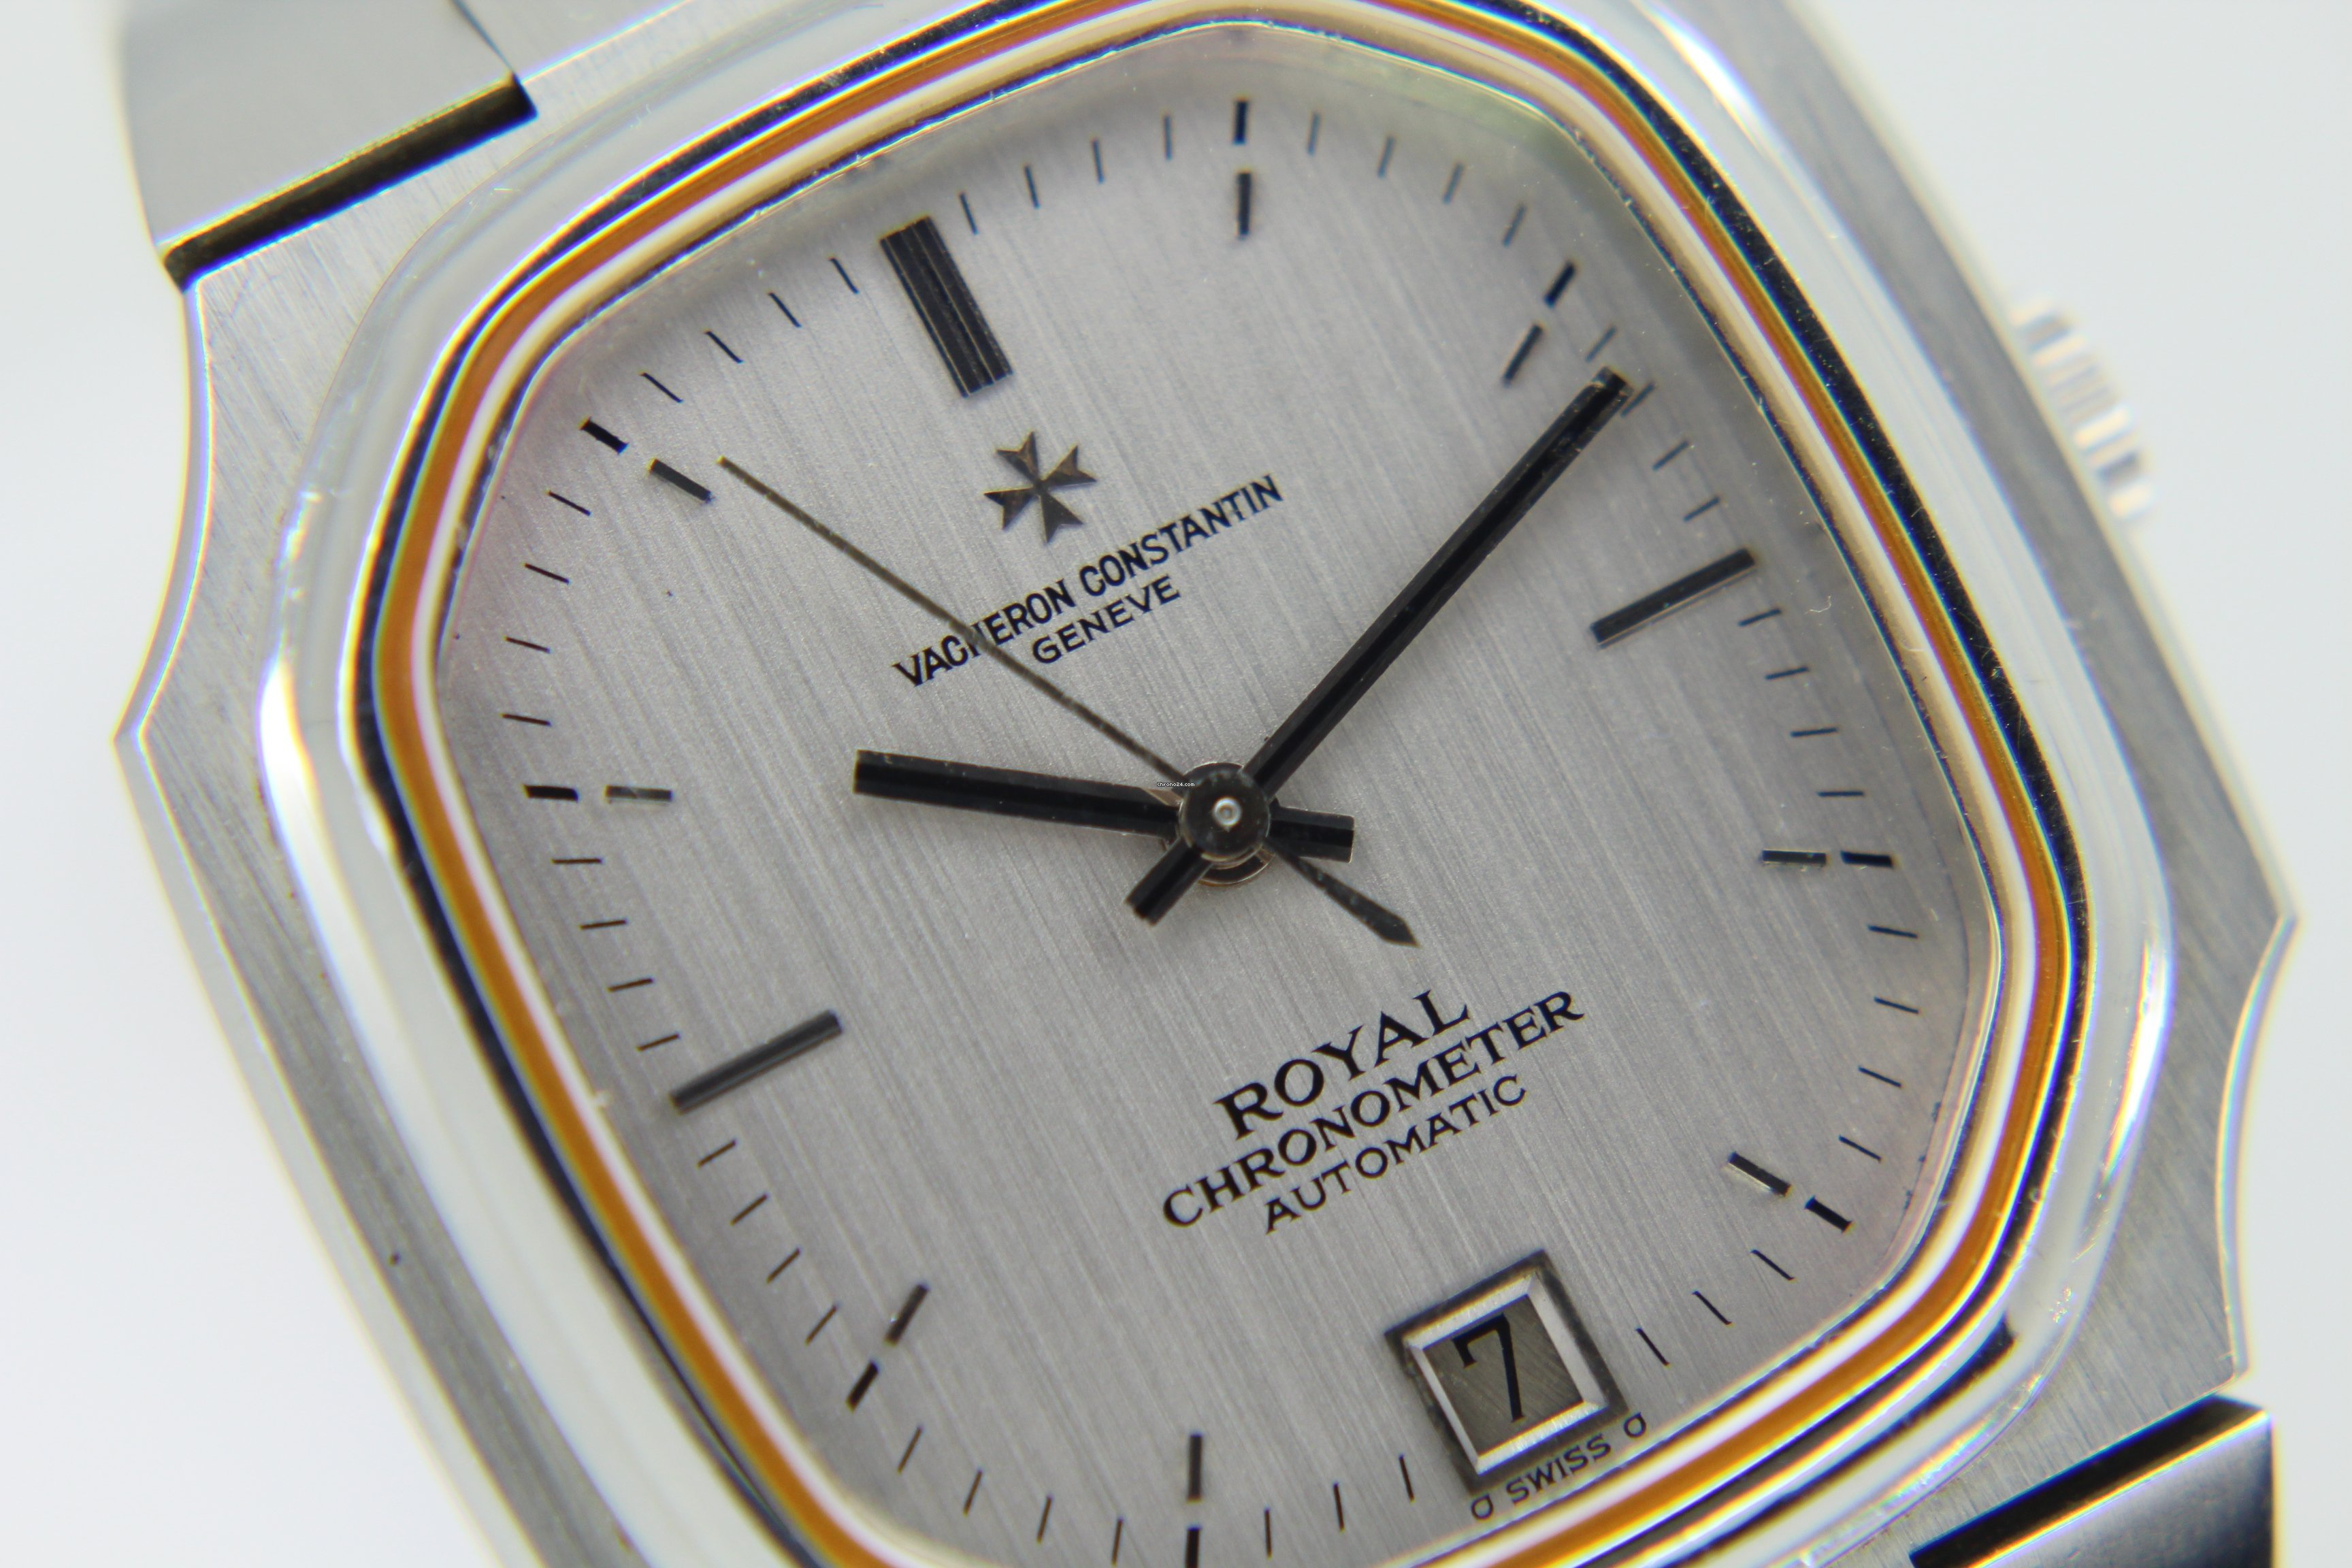 Vacheron Constantin Royal Chronometer 2215 Never Polished For